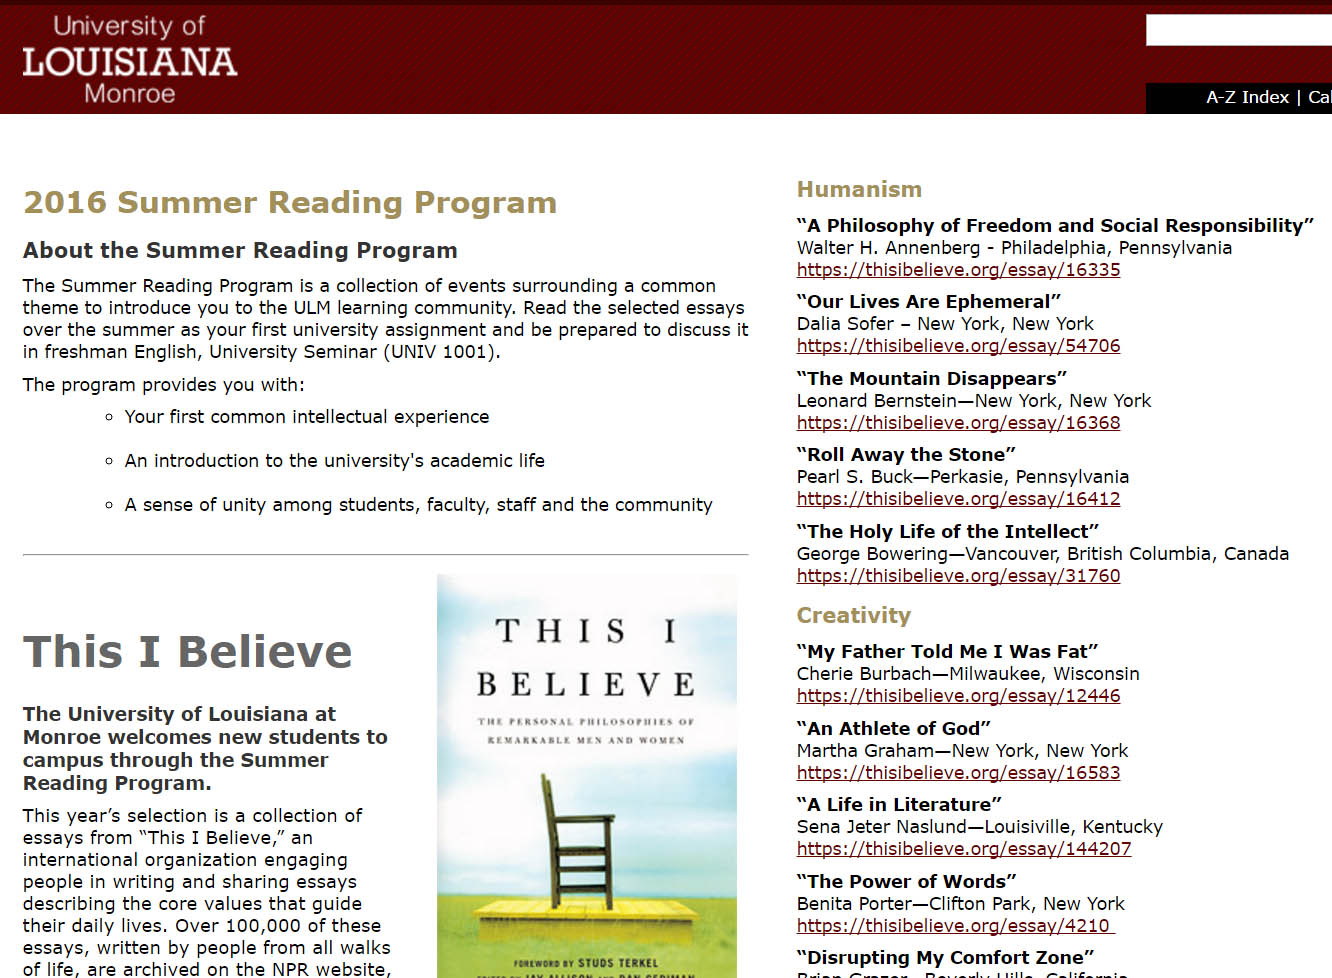 in the news cherie burbach cherie s this i believe essay was part of the summer reading program at the university of louisiana cherie s essay is one of 25 that is required reading